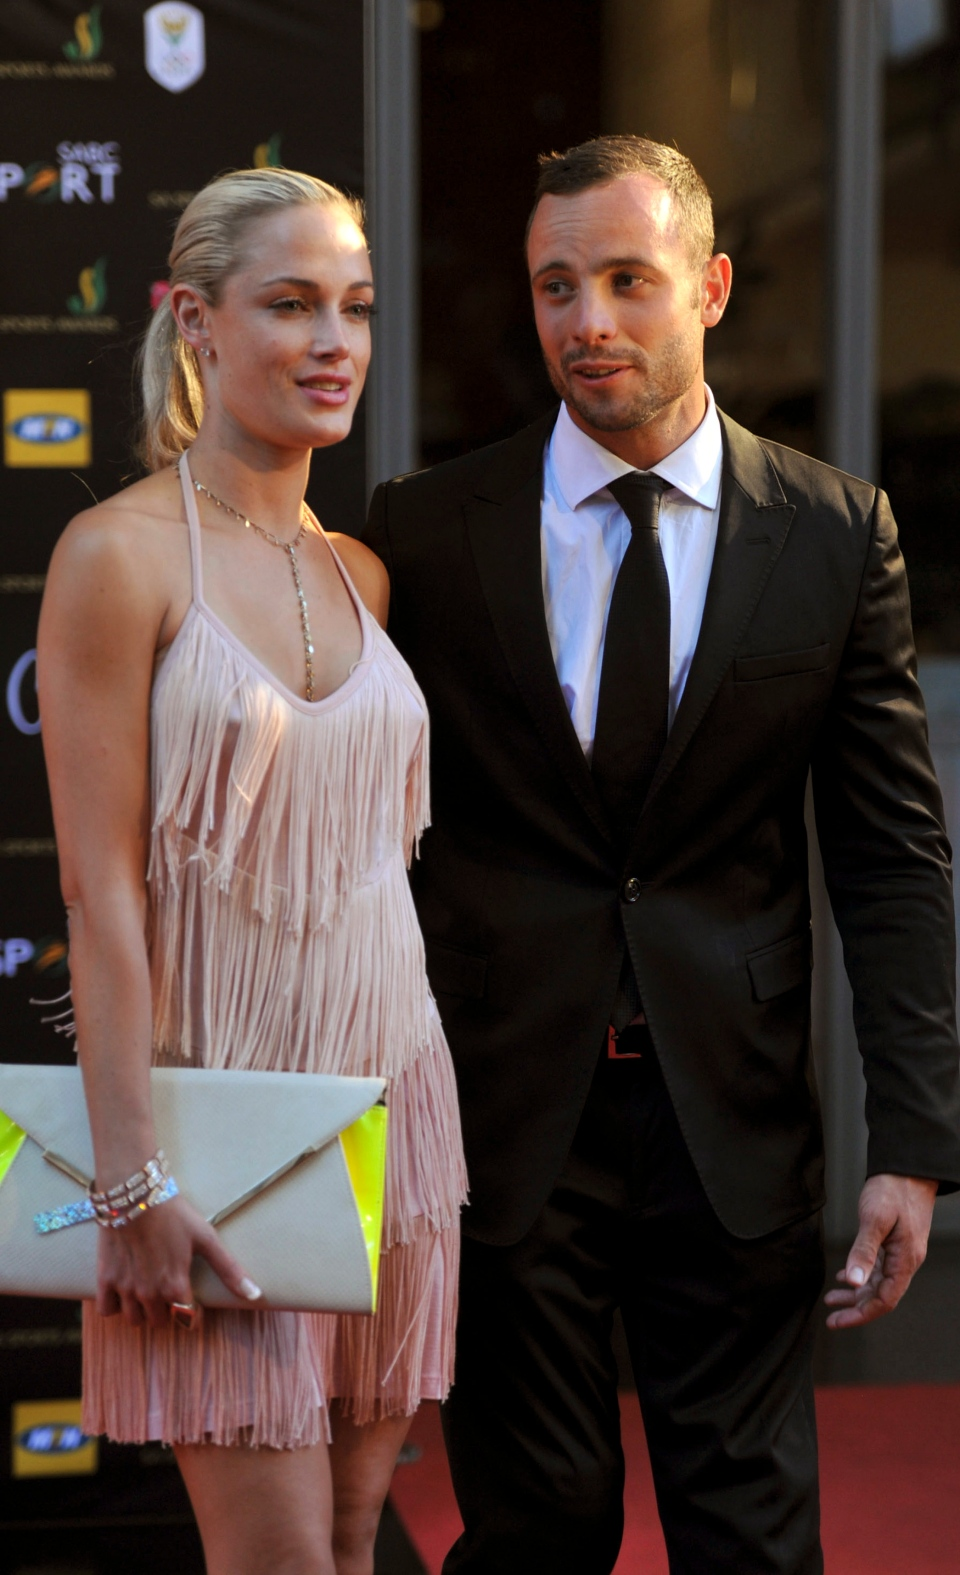 Olympic athlete Oscar Pistorius and model Reeva Steenkamp attend an awards ceremony in Johannesburg, South Africa, Nov. 4, 2012. (Lucky Nxumalo / Citypress)